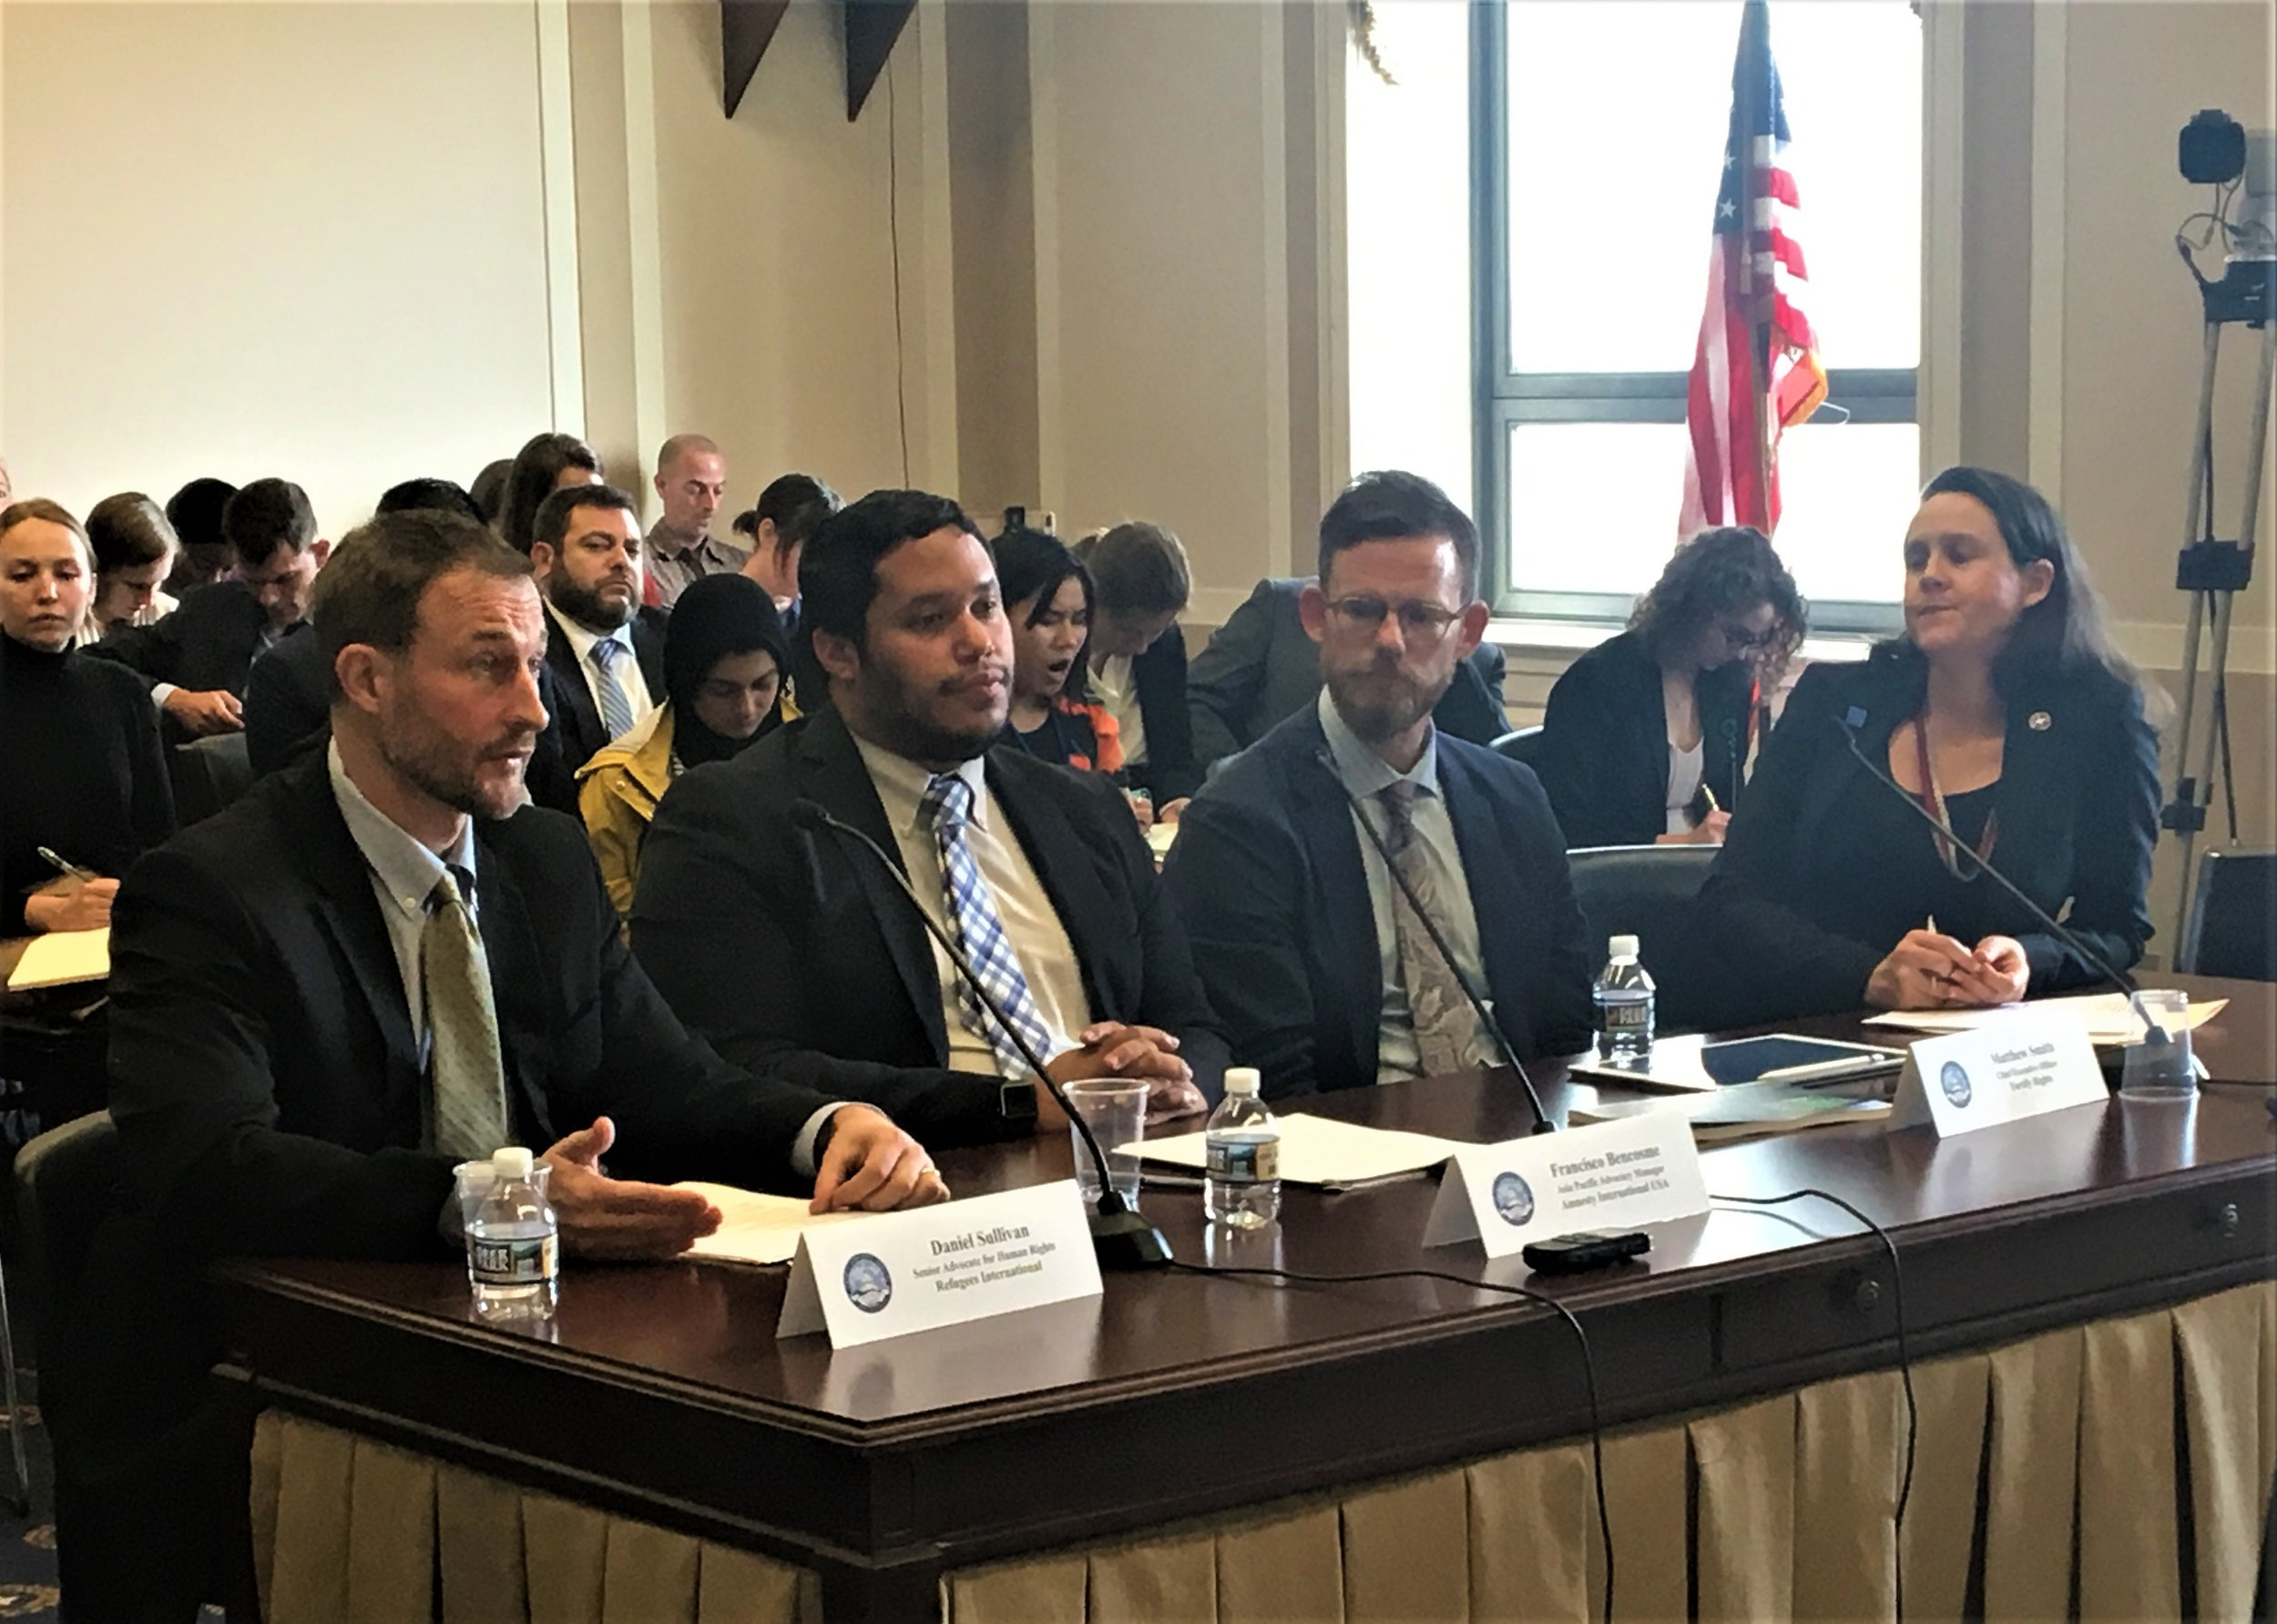 Daniel Sullivan (left) testifies before a Tom Lantos Human Rights Commission Hearing on Victims' Rights in Burma.